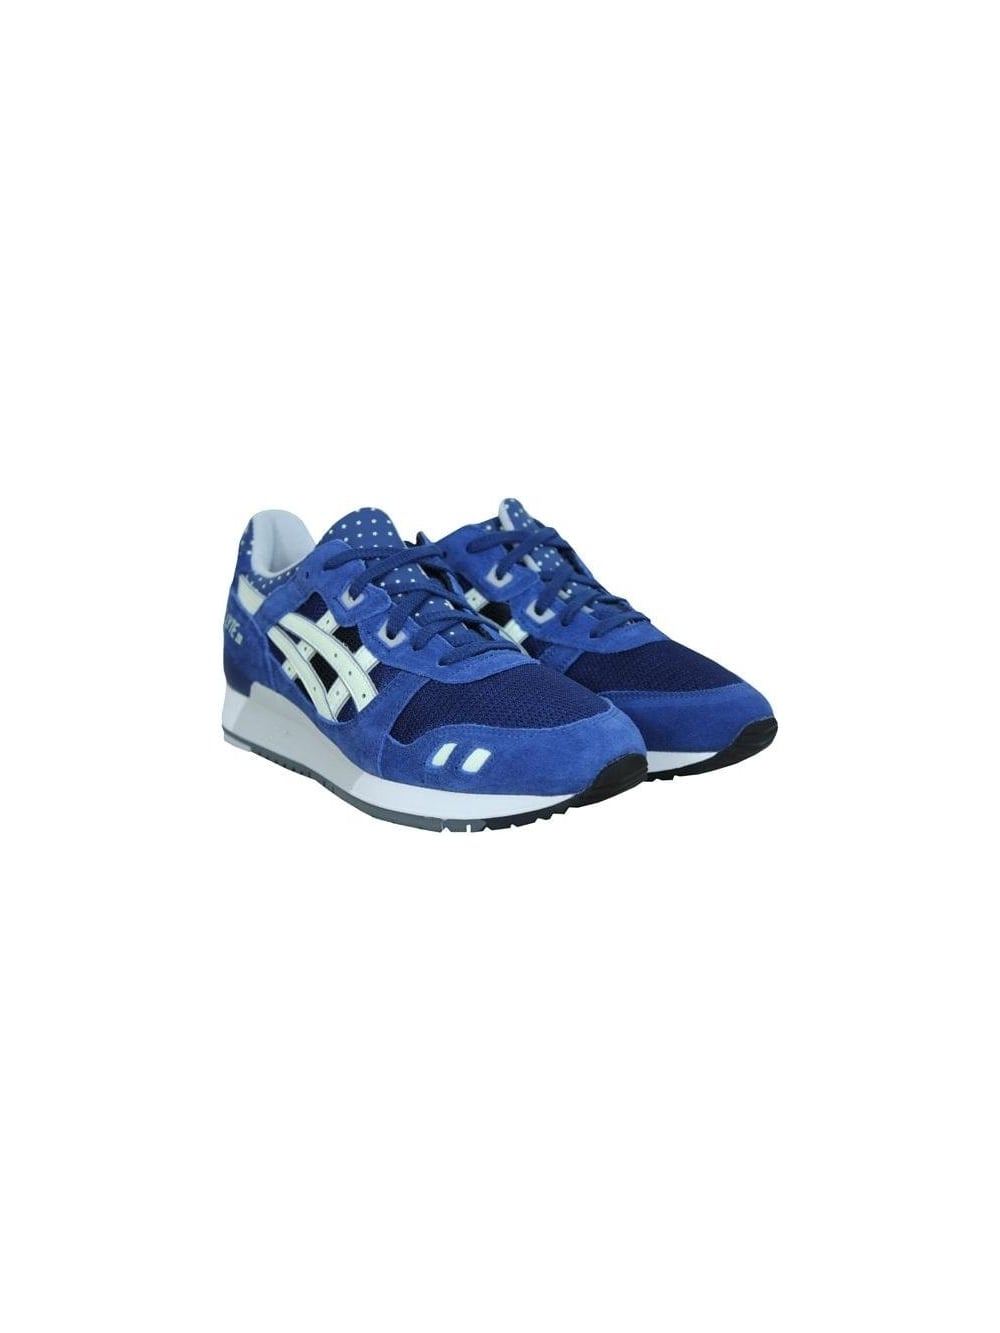 save off 5add4 aee4c Gel Lyte III Glow in the Dark - Estate Blue